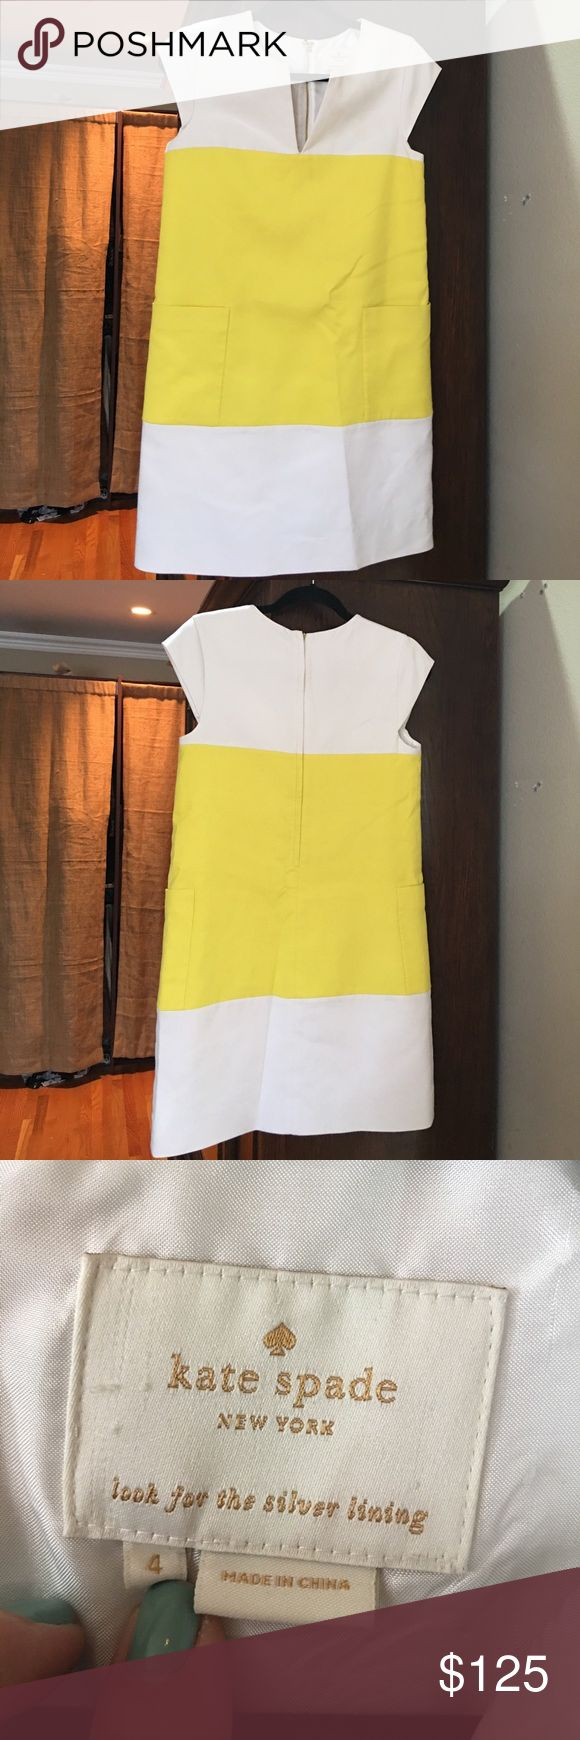 Kate Spade Look For The Silver Lining Dress White and yellow colorblock cap sleeves shift zip up back slit neckline size 4 kate spade Dresses Mini